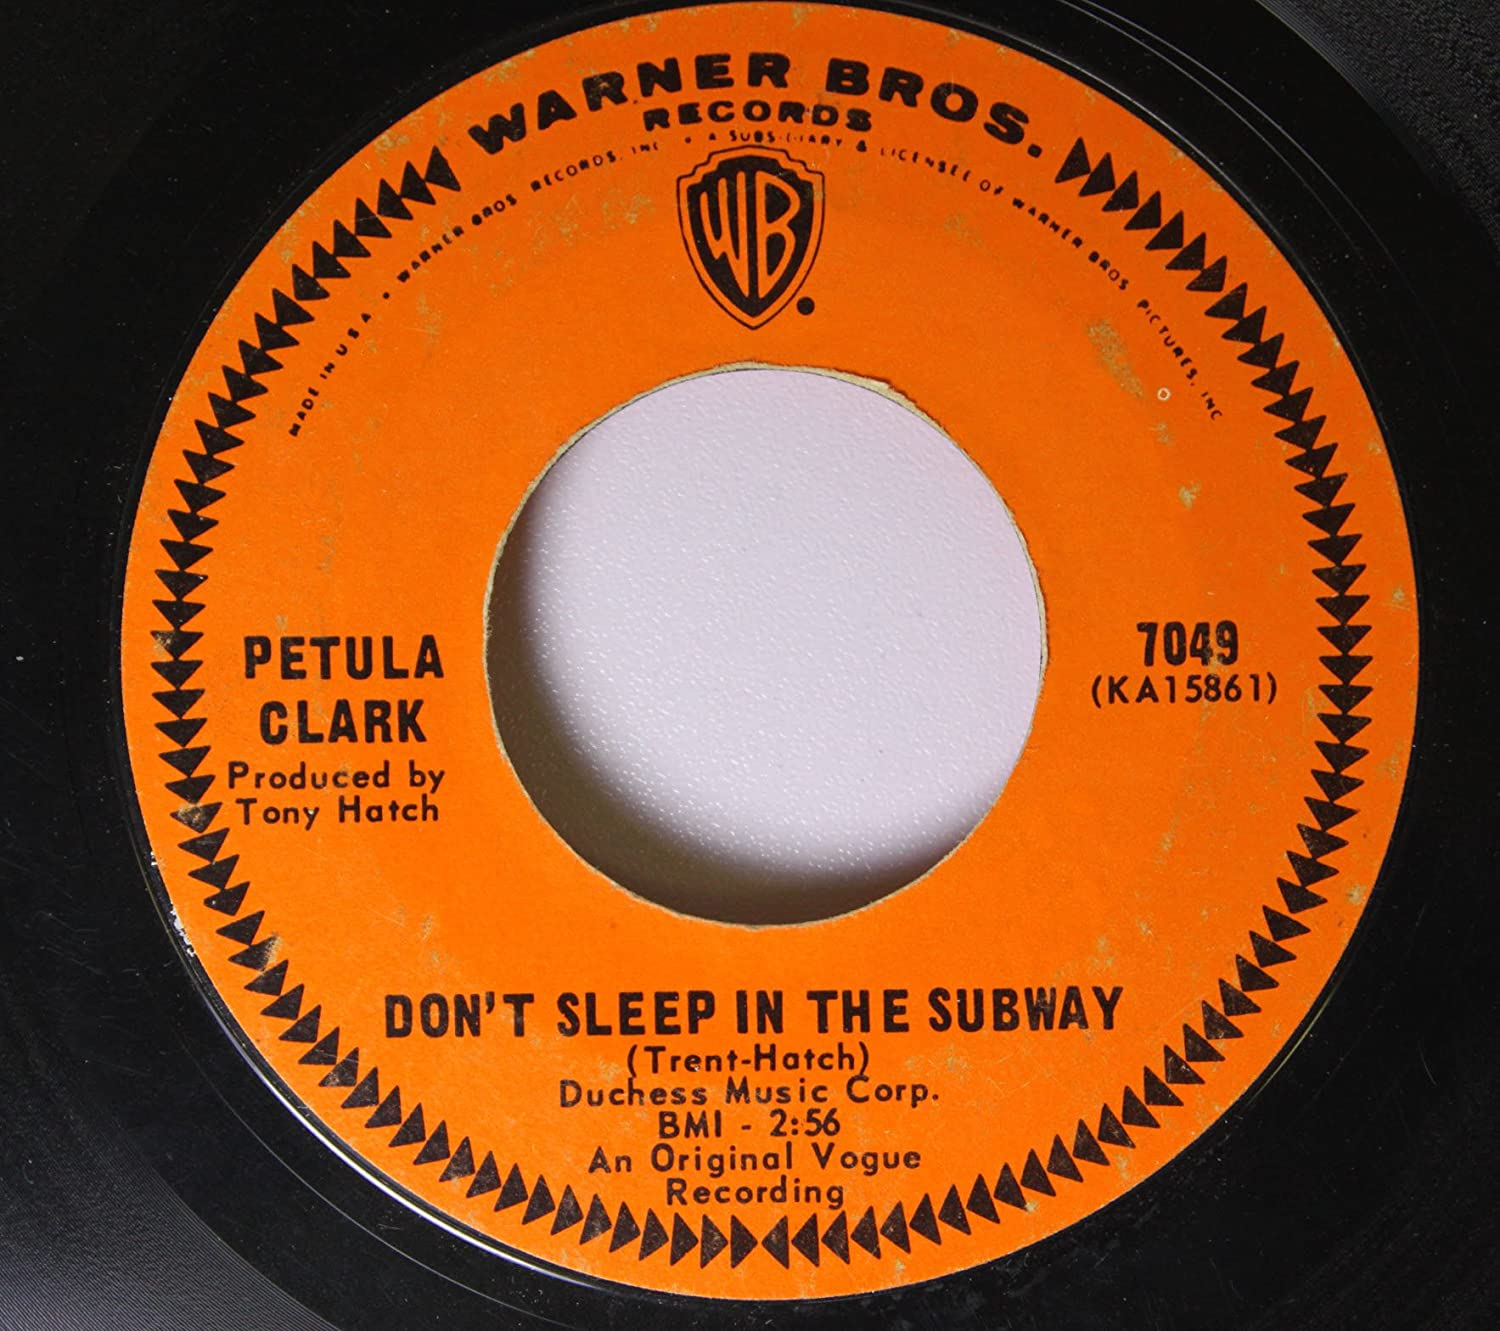 PETULA CLARK 45 RPM Don't Sleep In The Subway / Here Comes The Morning